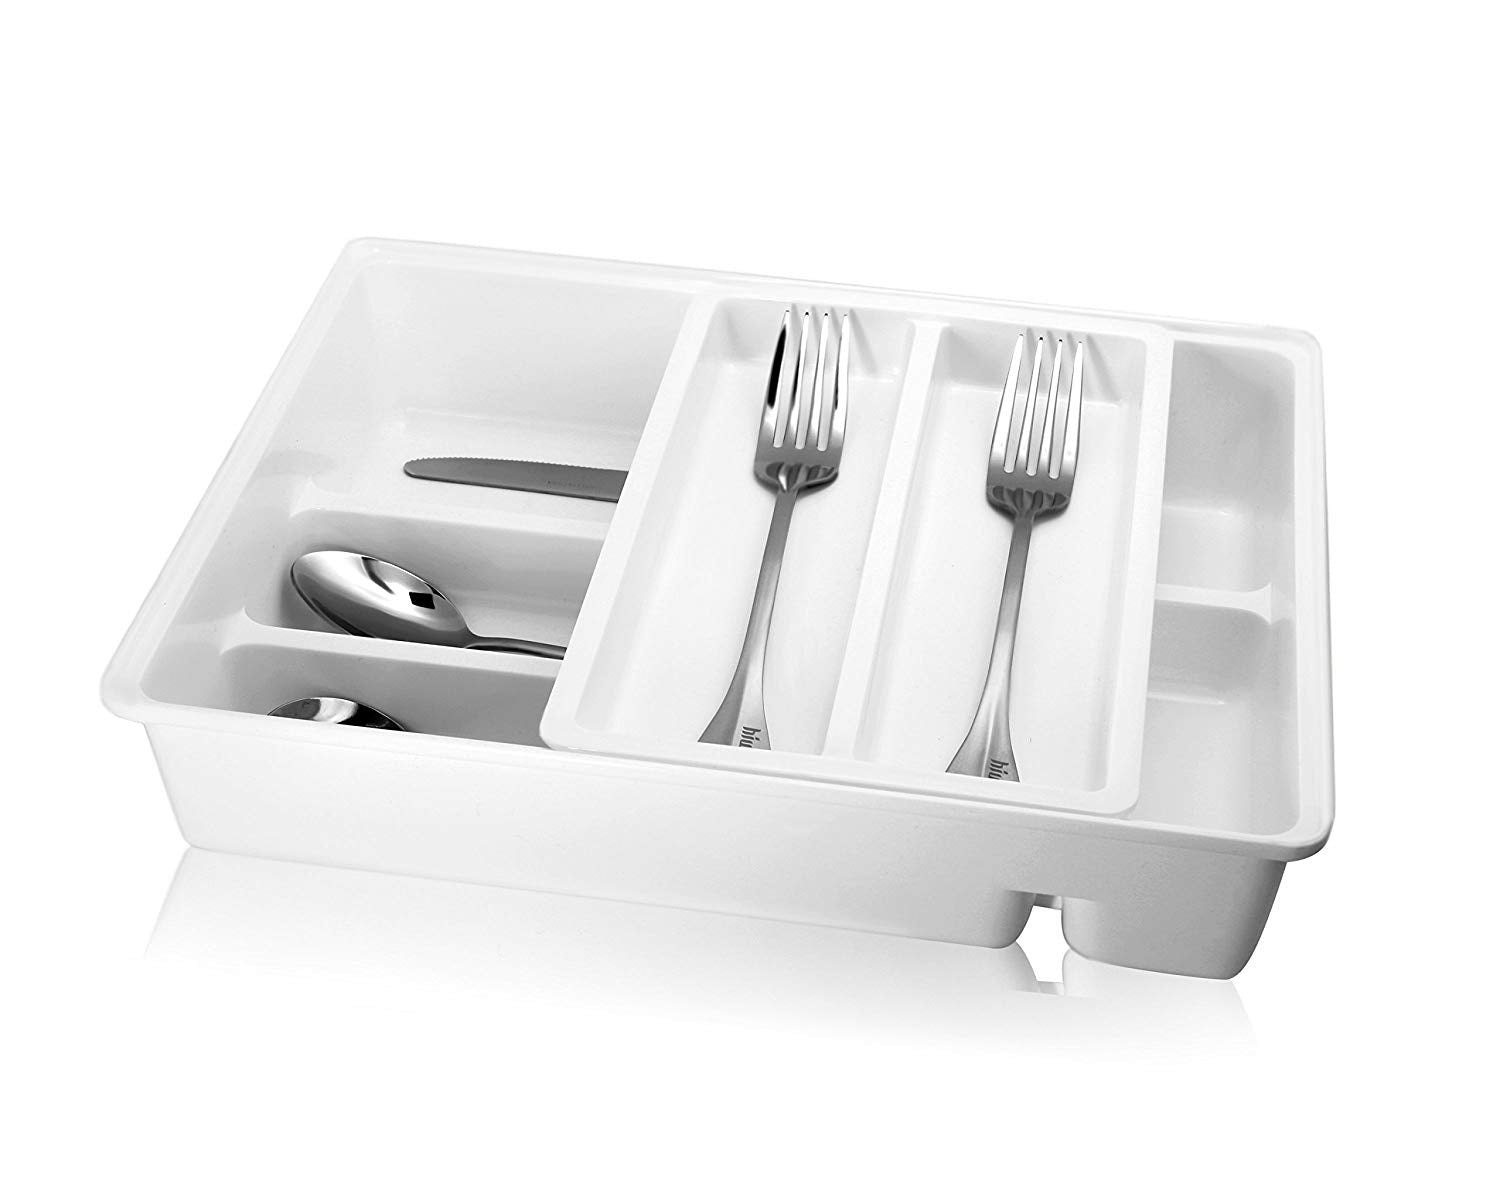 Hiware Double Tiered Cutlery Tray Drawer Insert, Plastic Utensil Organizer, Universal Drawer Organizer